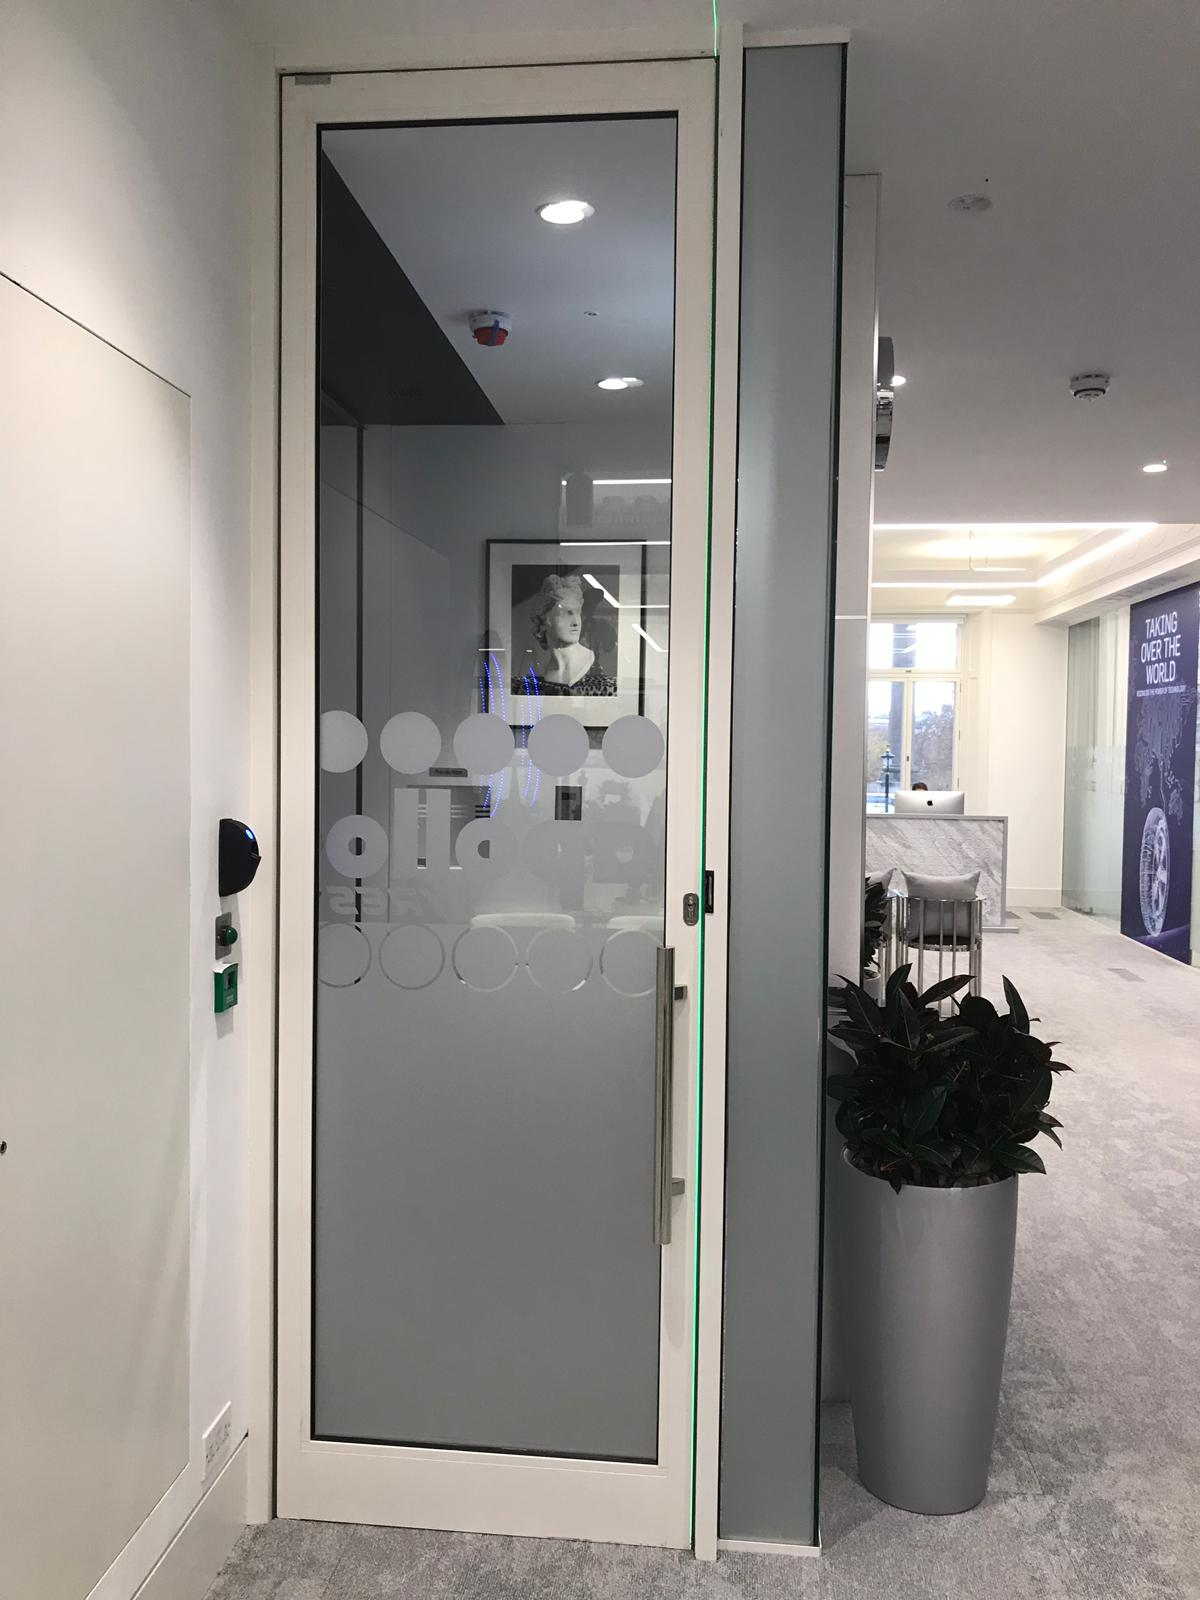 8 Waterloo Place (London) – Glass Walls and Doors